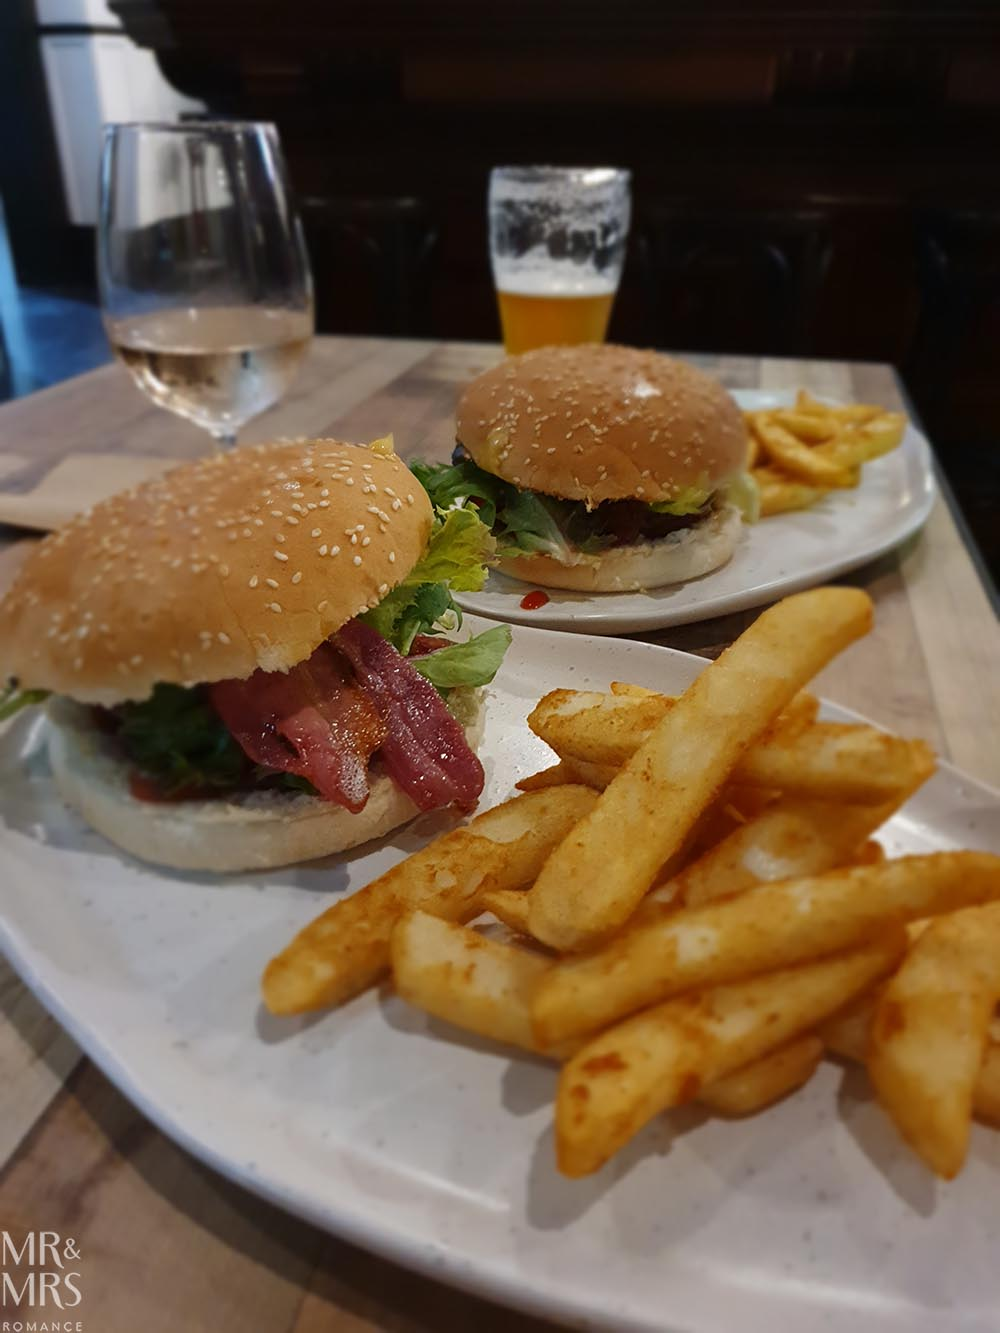 New burger from The Exchange Hotel, Balmain